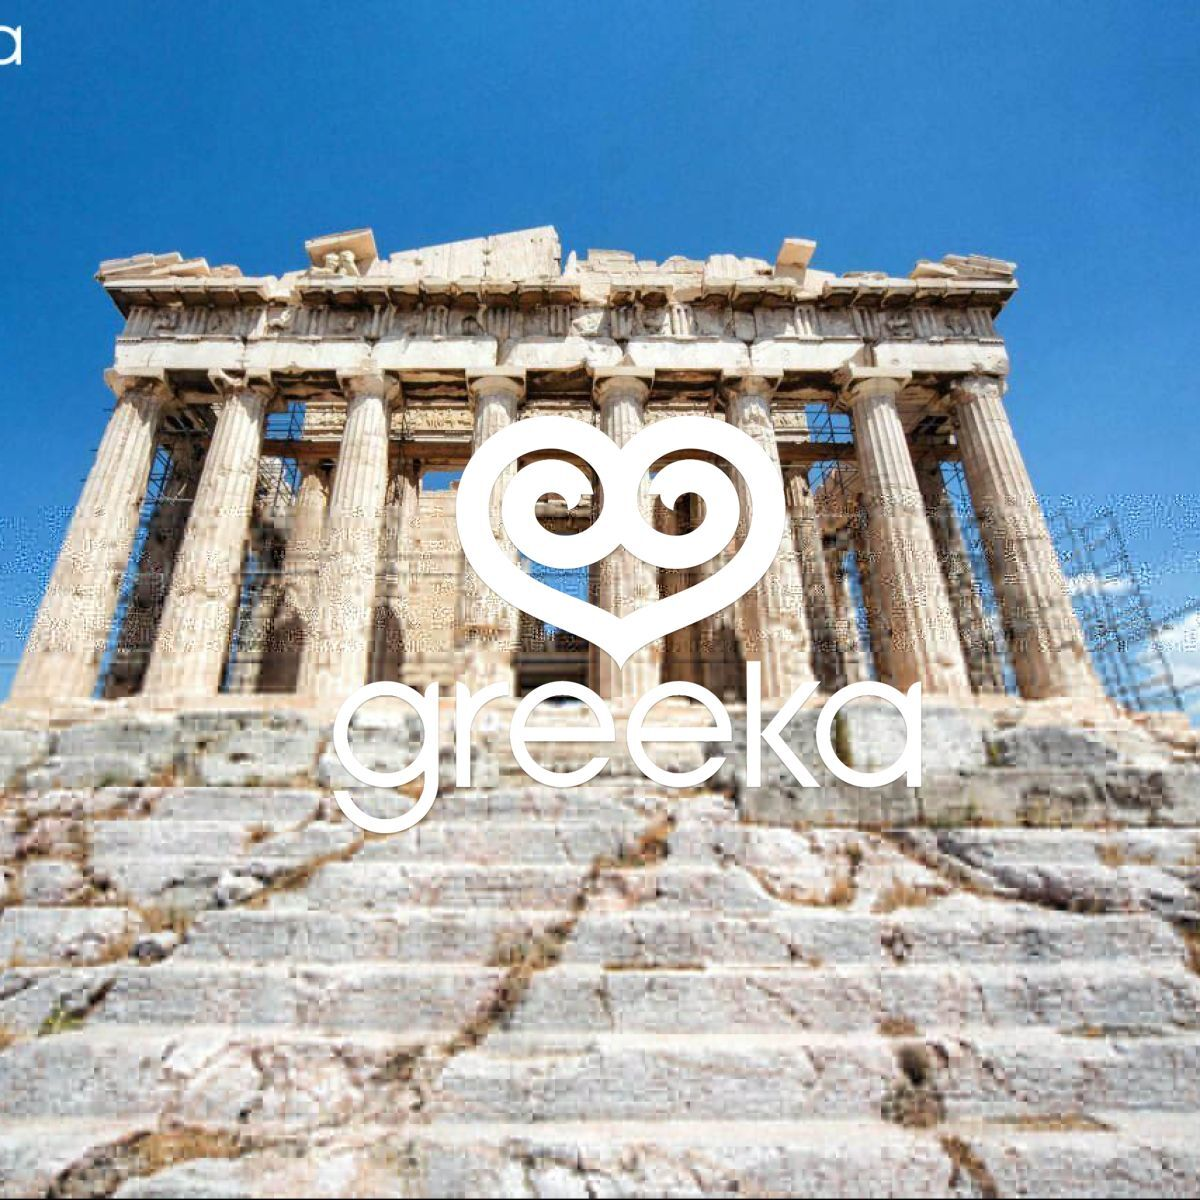 Acropolis in Athens, Greece - Greeka com